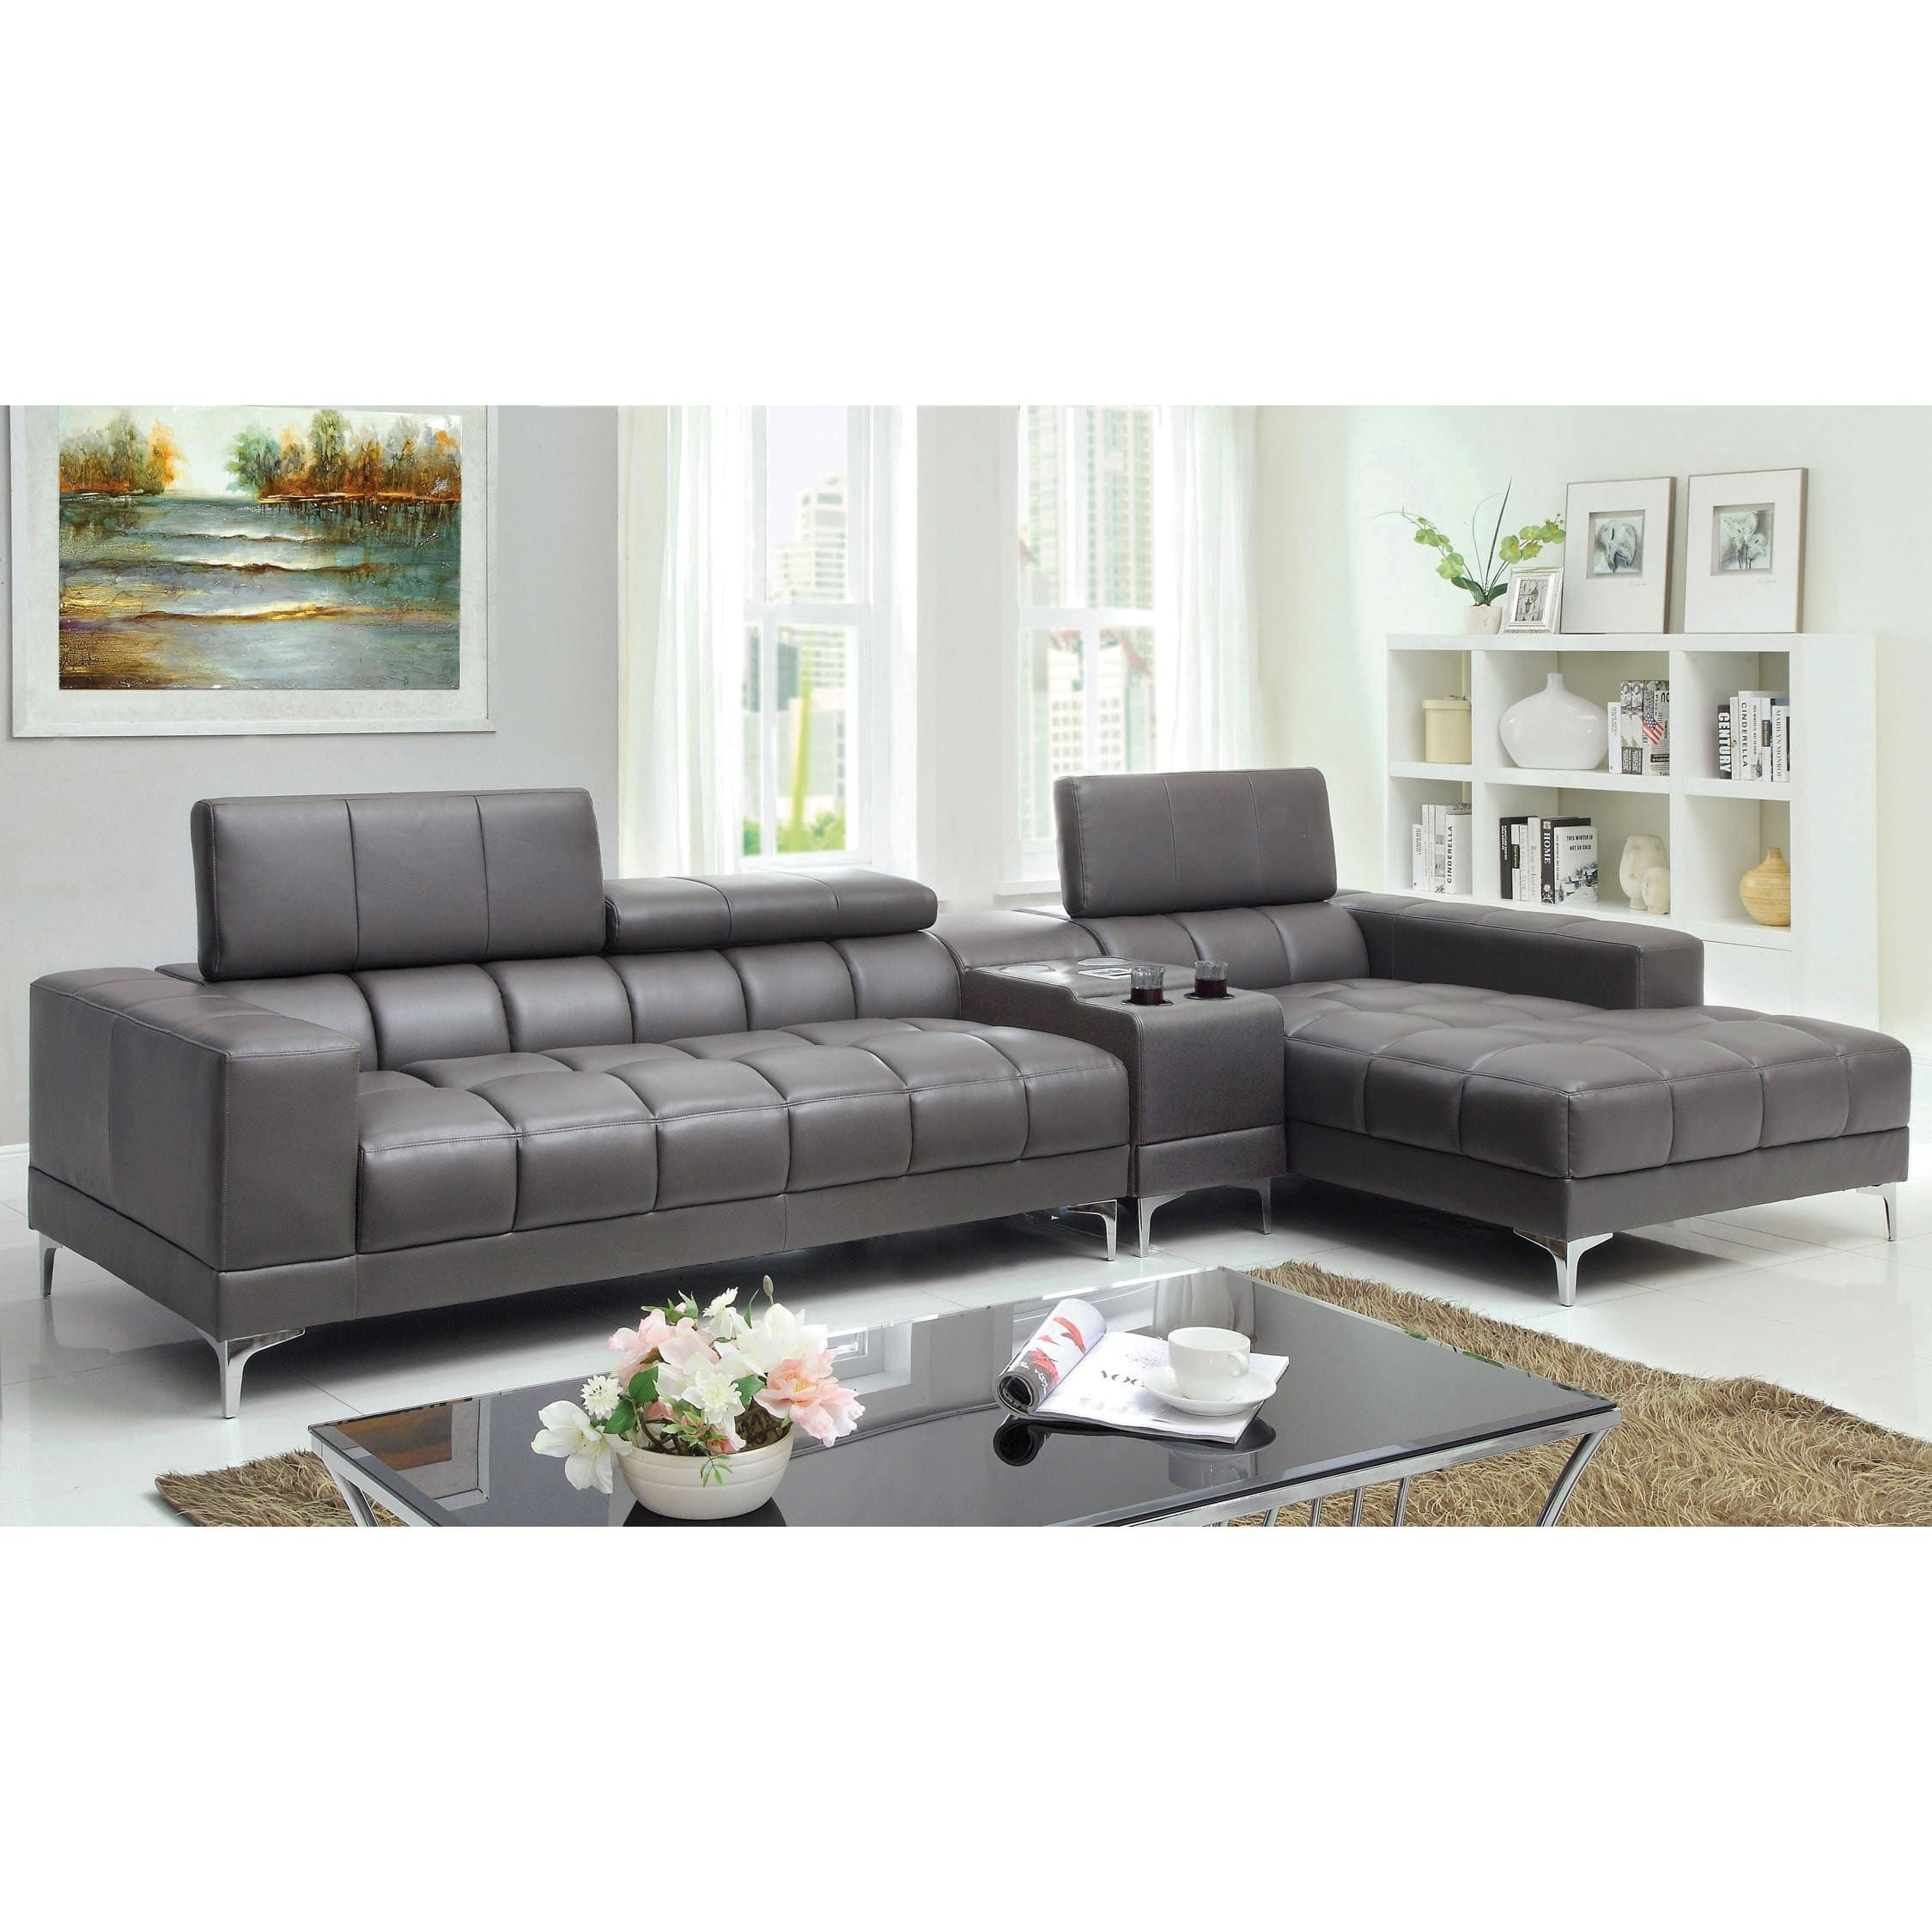 Furniture of America Bourlette Grey Bonded Leather 2-Piece Sectional ...